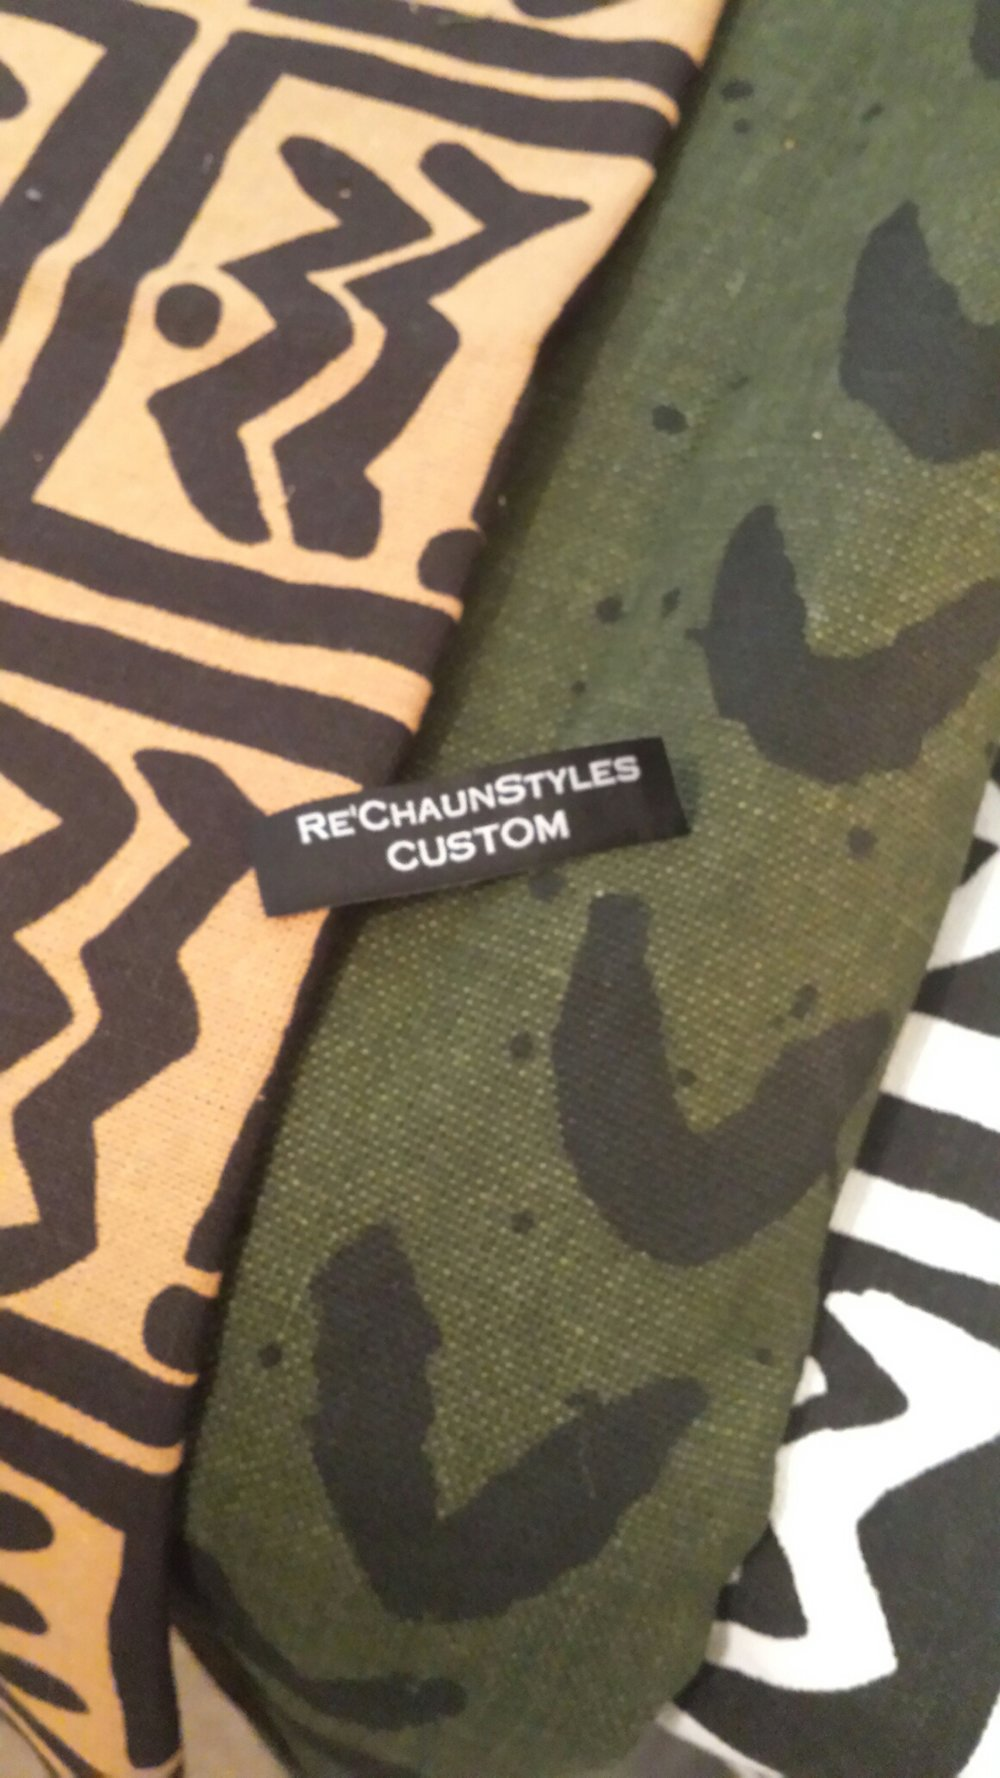 Fabrics for Re'ChaunStyles upcoming collection